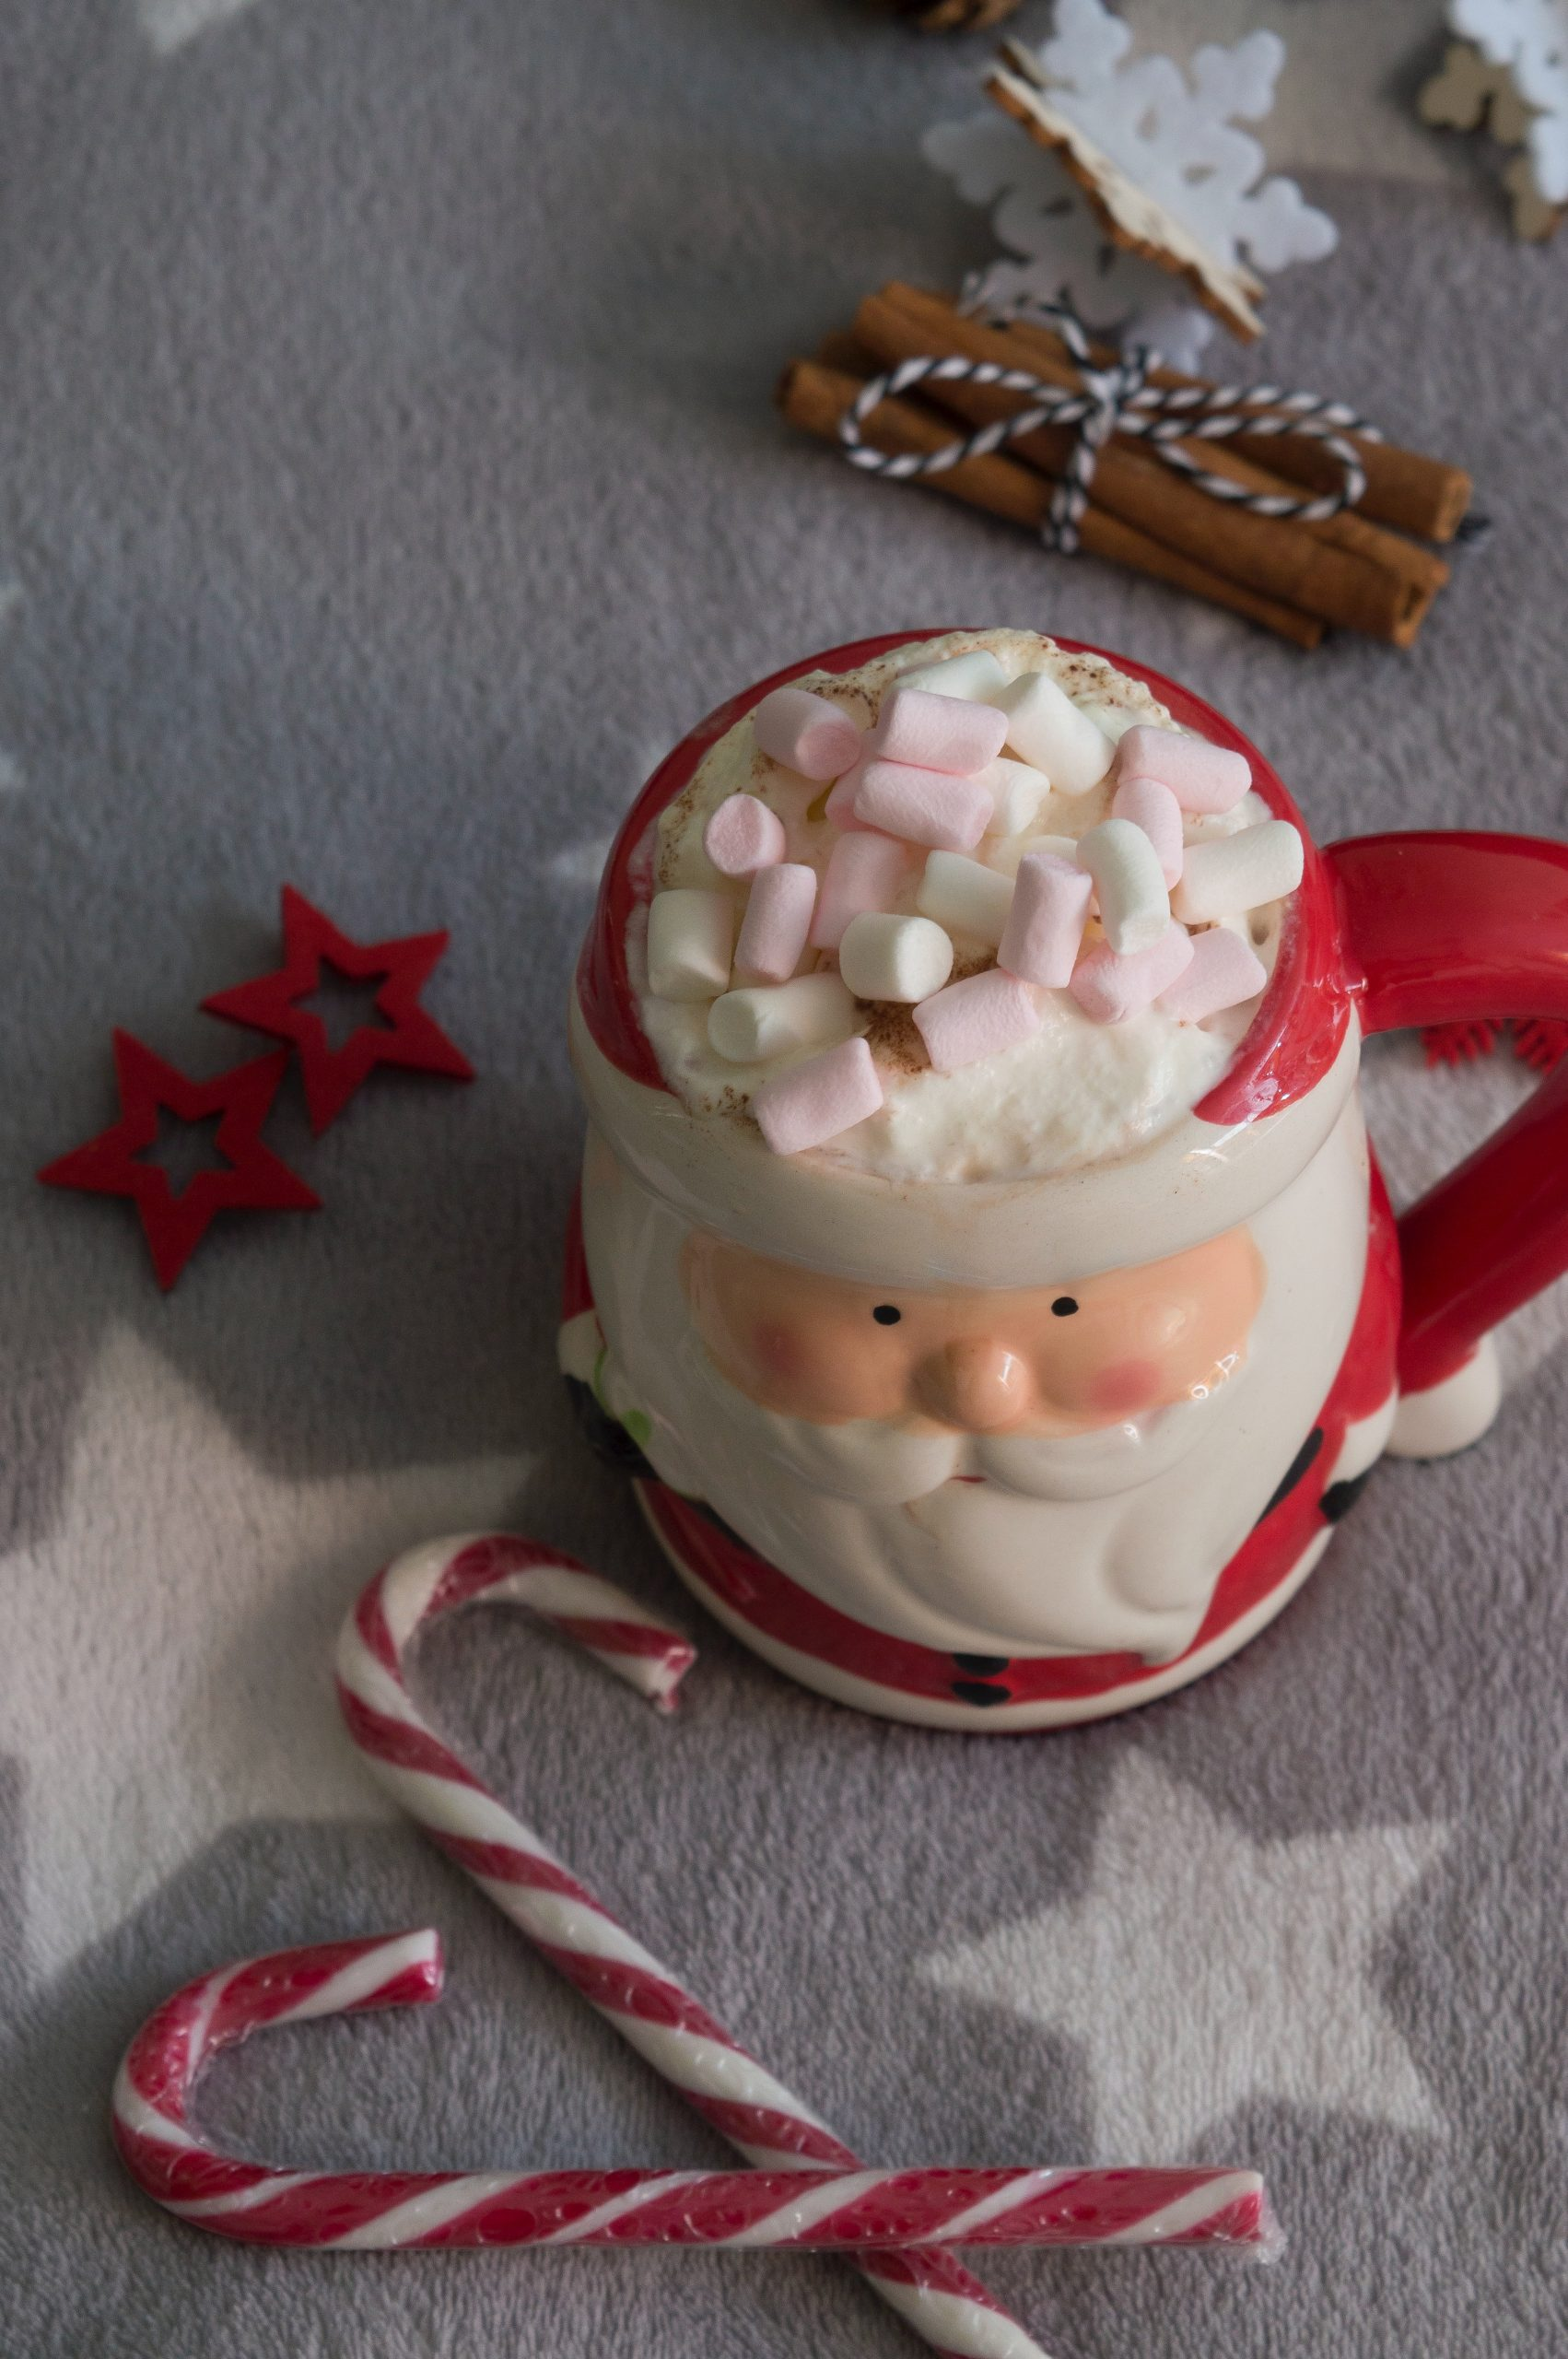 Santa Claus mug full of hot chocolate and marshmallows